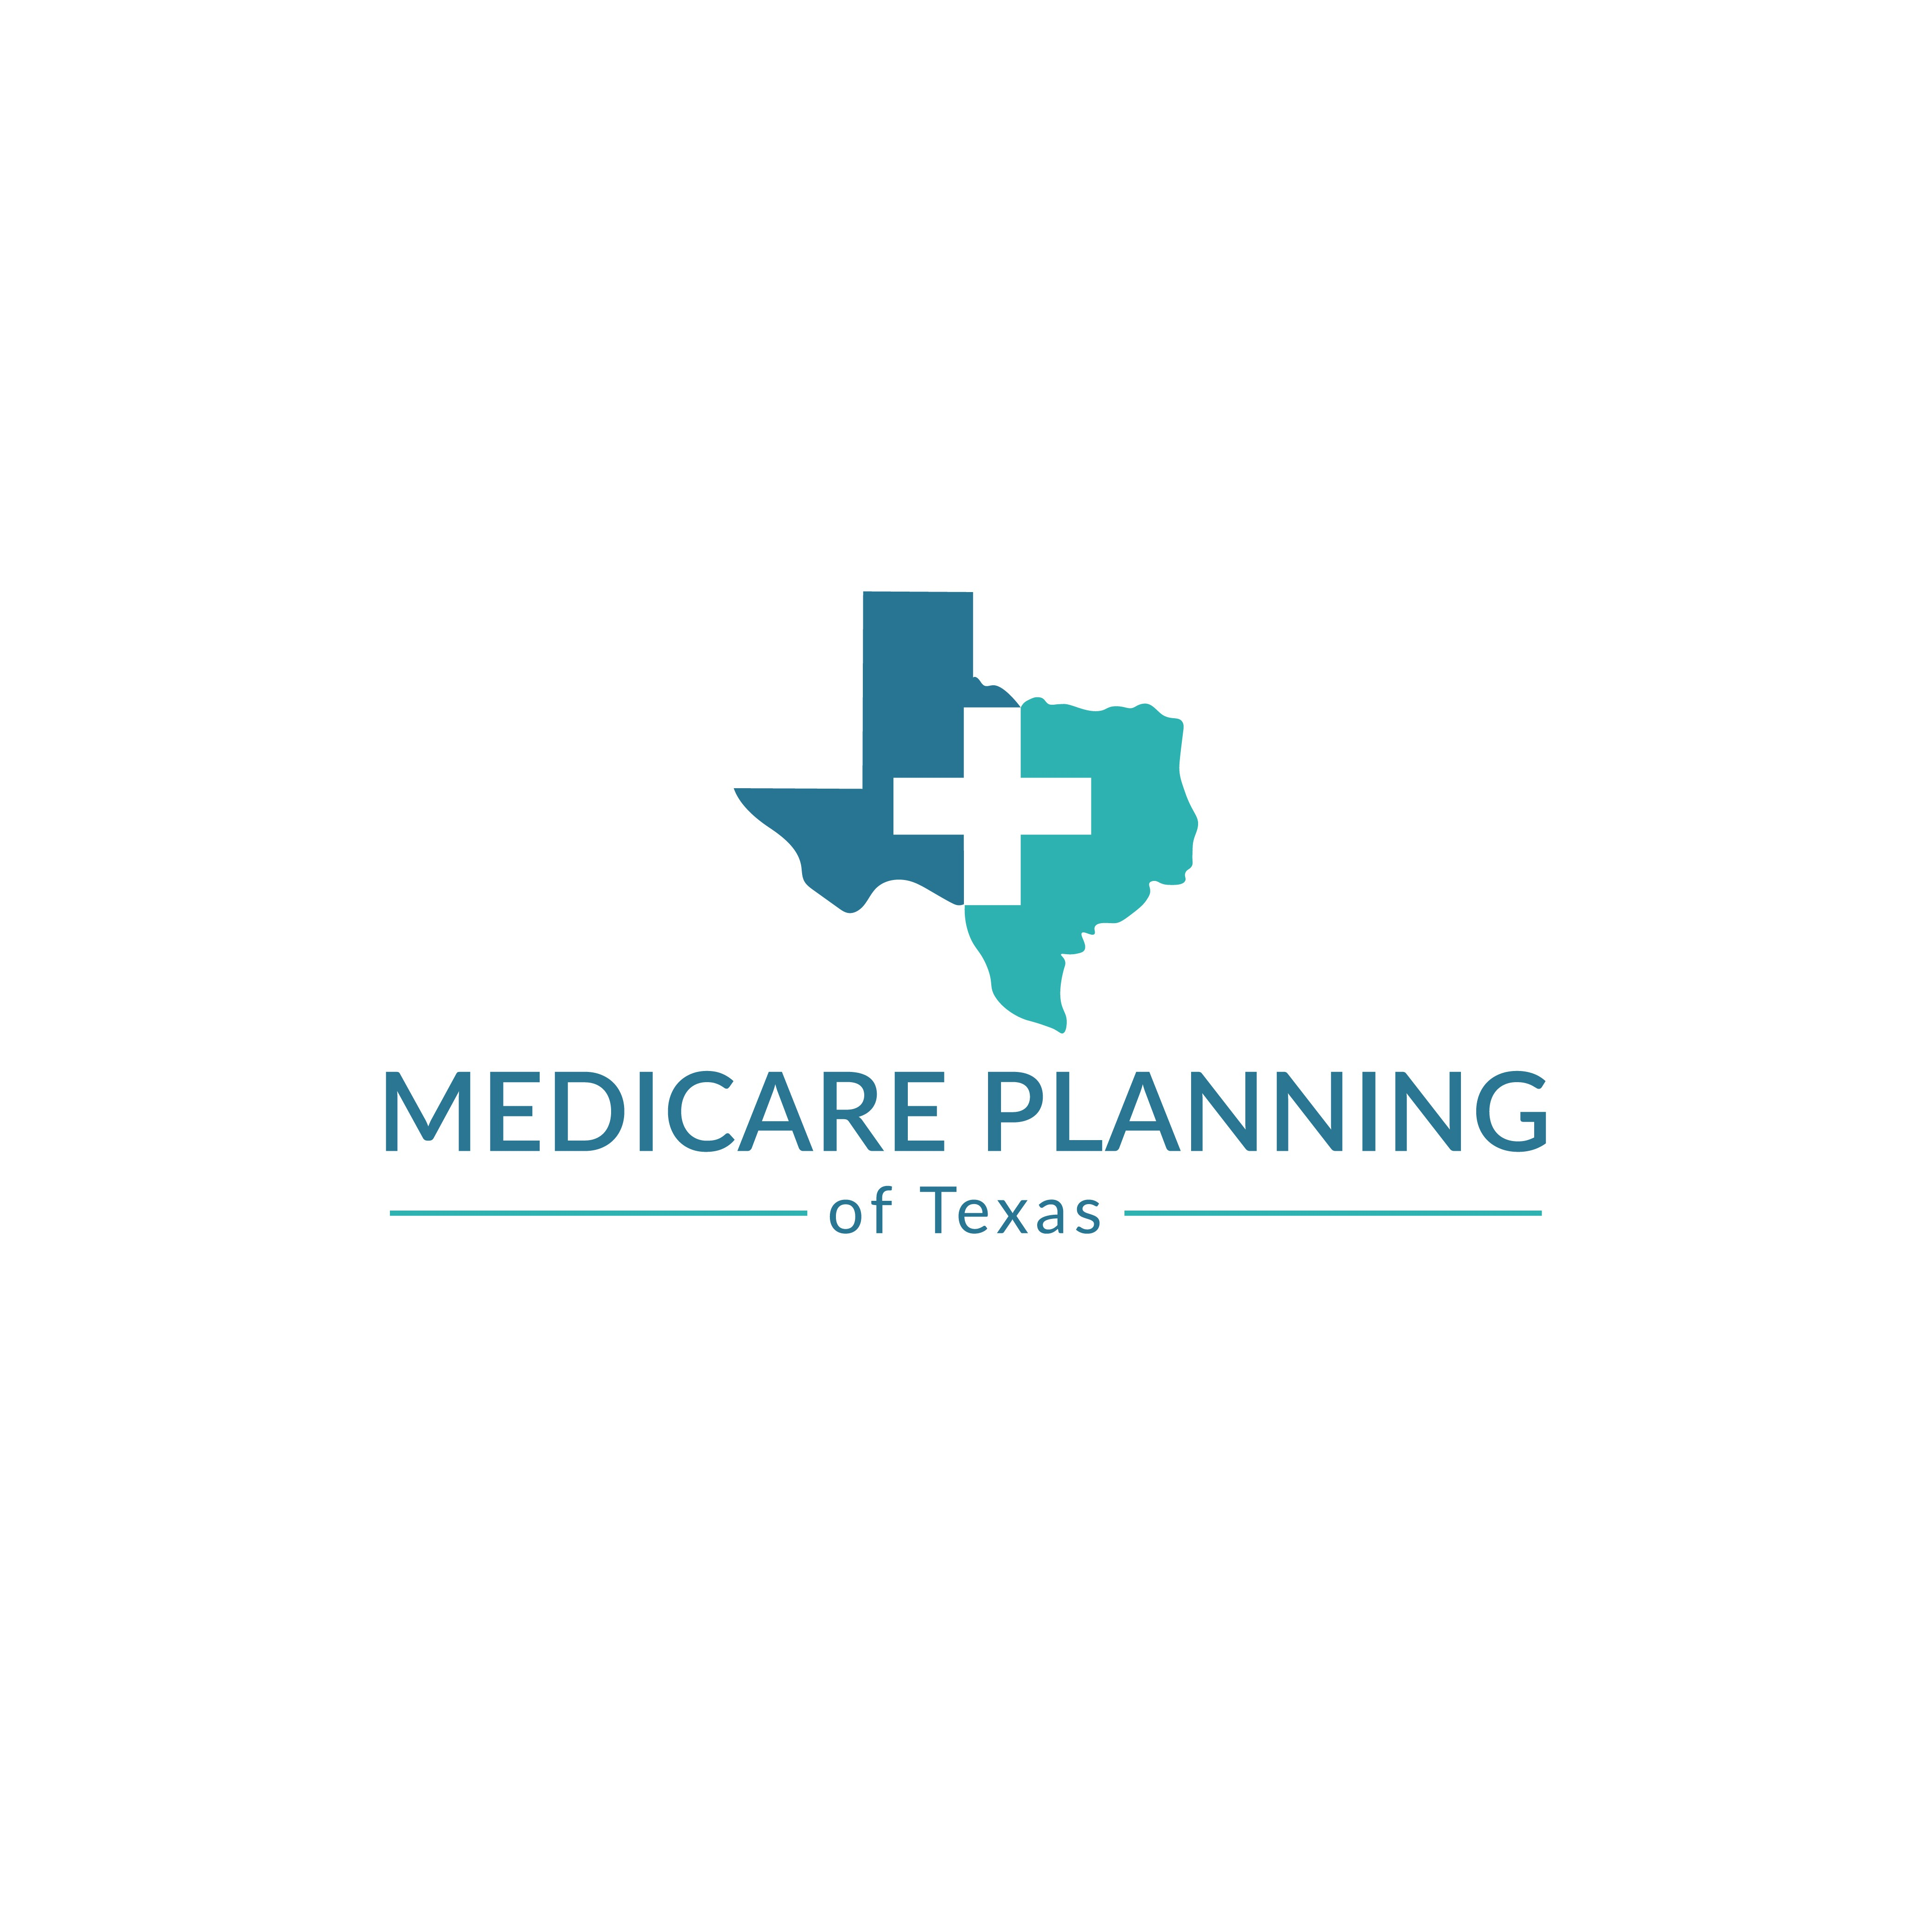 Need a modern, matching logo design for our Medicare Planning Shop in Texas